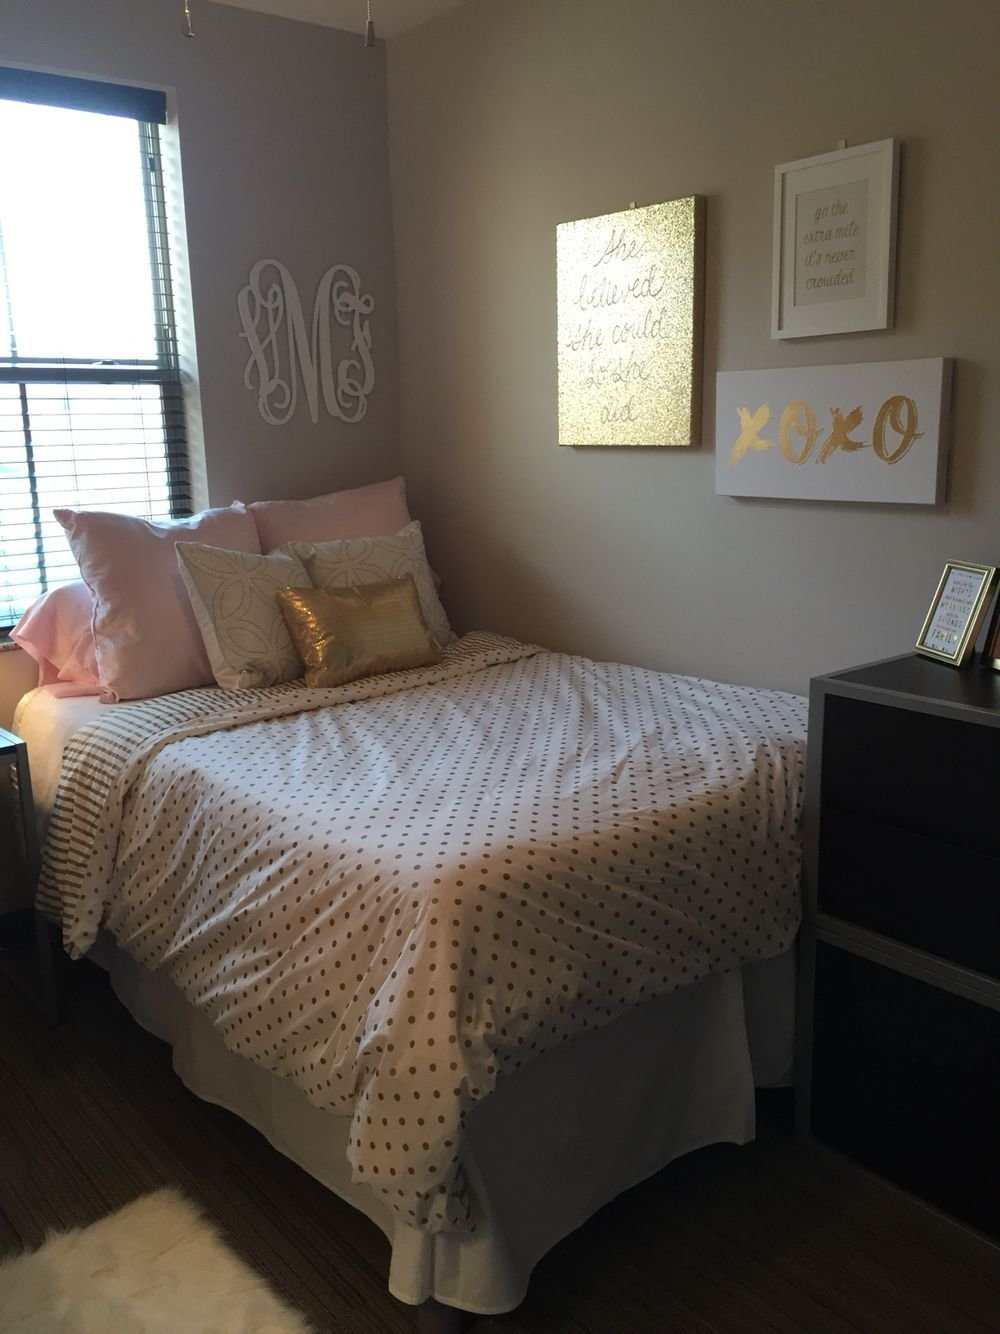 Best University Of Kentucky Dorm Room With Pbteen Sheets With Pictures